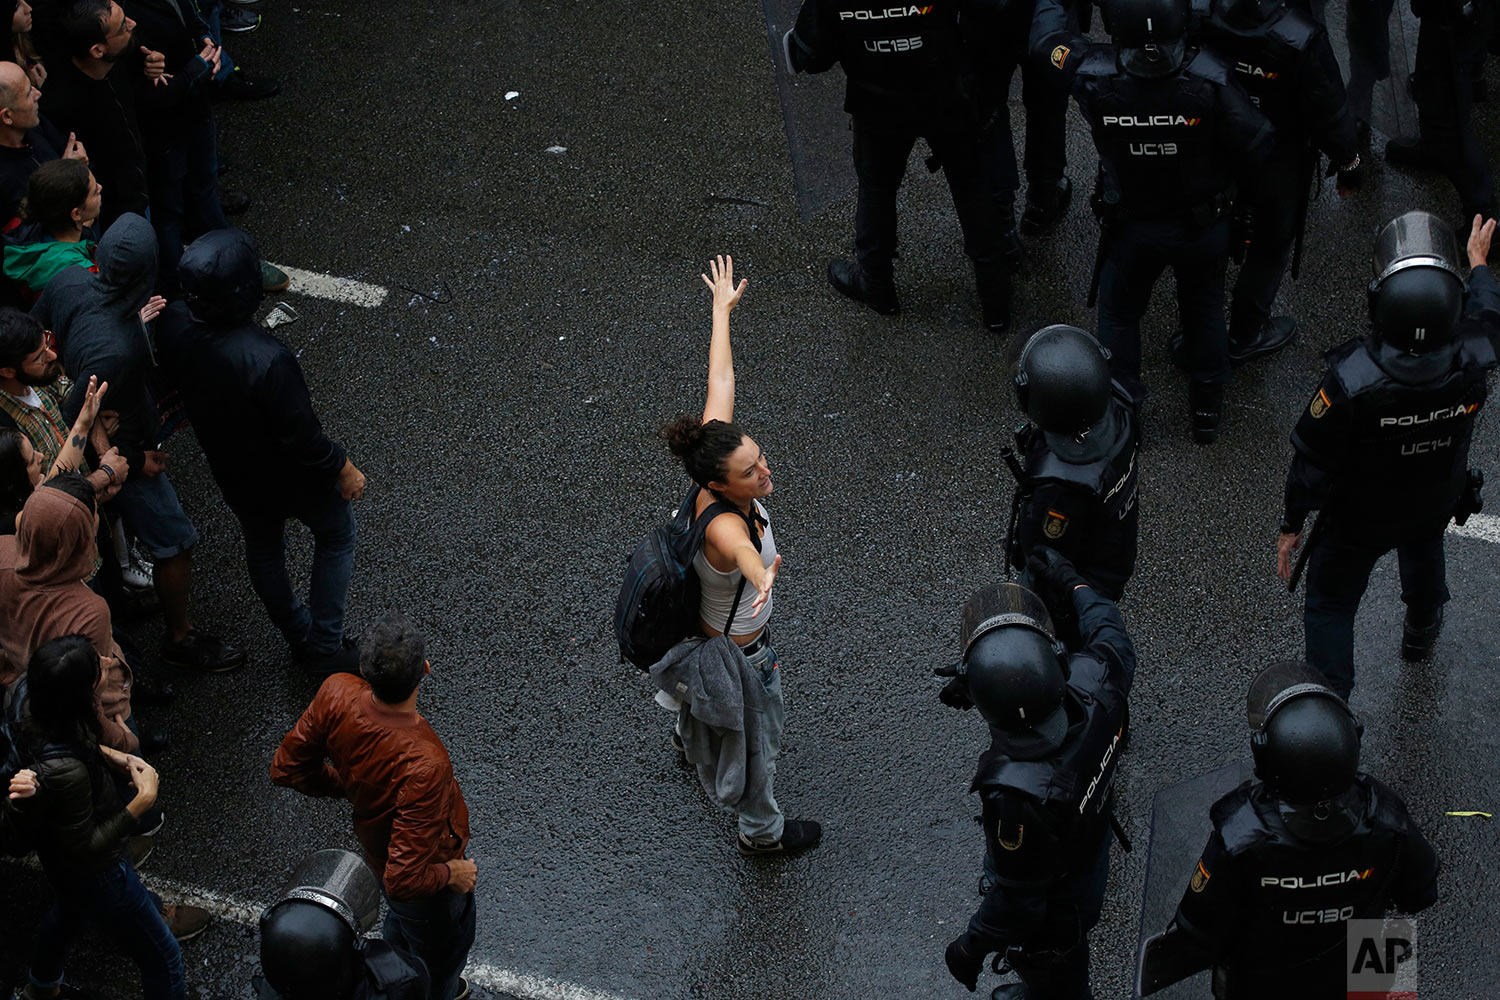 A woman holds her hands up next Spanish National Police as they try to block voters from reaching a voting site at a school assigned to be a polling station by the Catalan government in Barcelona, Spain, Sunday, Oct. 1, 2017. Catalan pro-referendum supporters vowed Saturday to ignore a police ultimatum to leave the schools they are occupying to use in a vote seeking independence from Spain. (AP Photo/Emilio Morenatti)